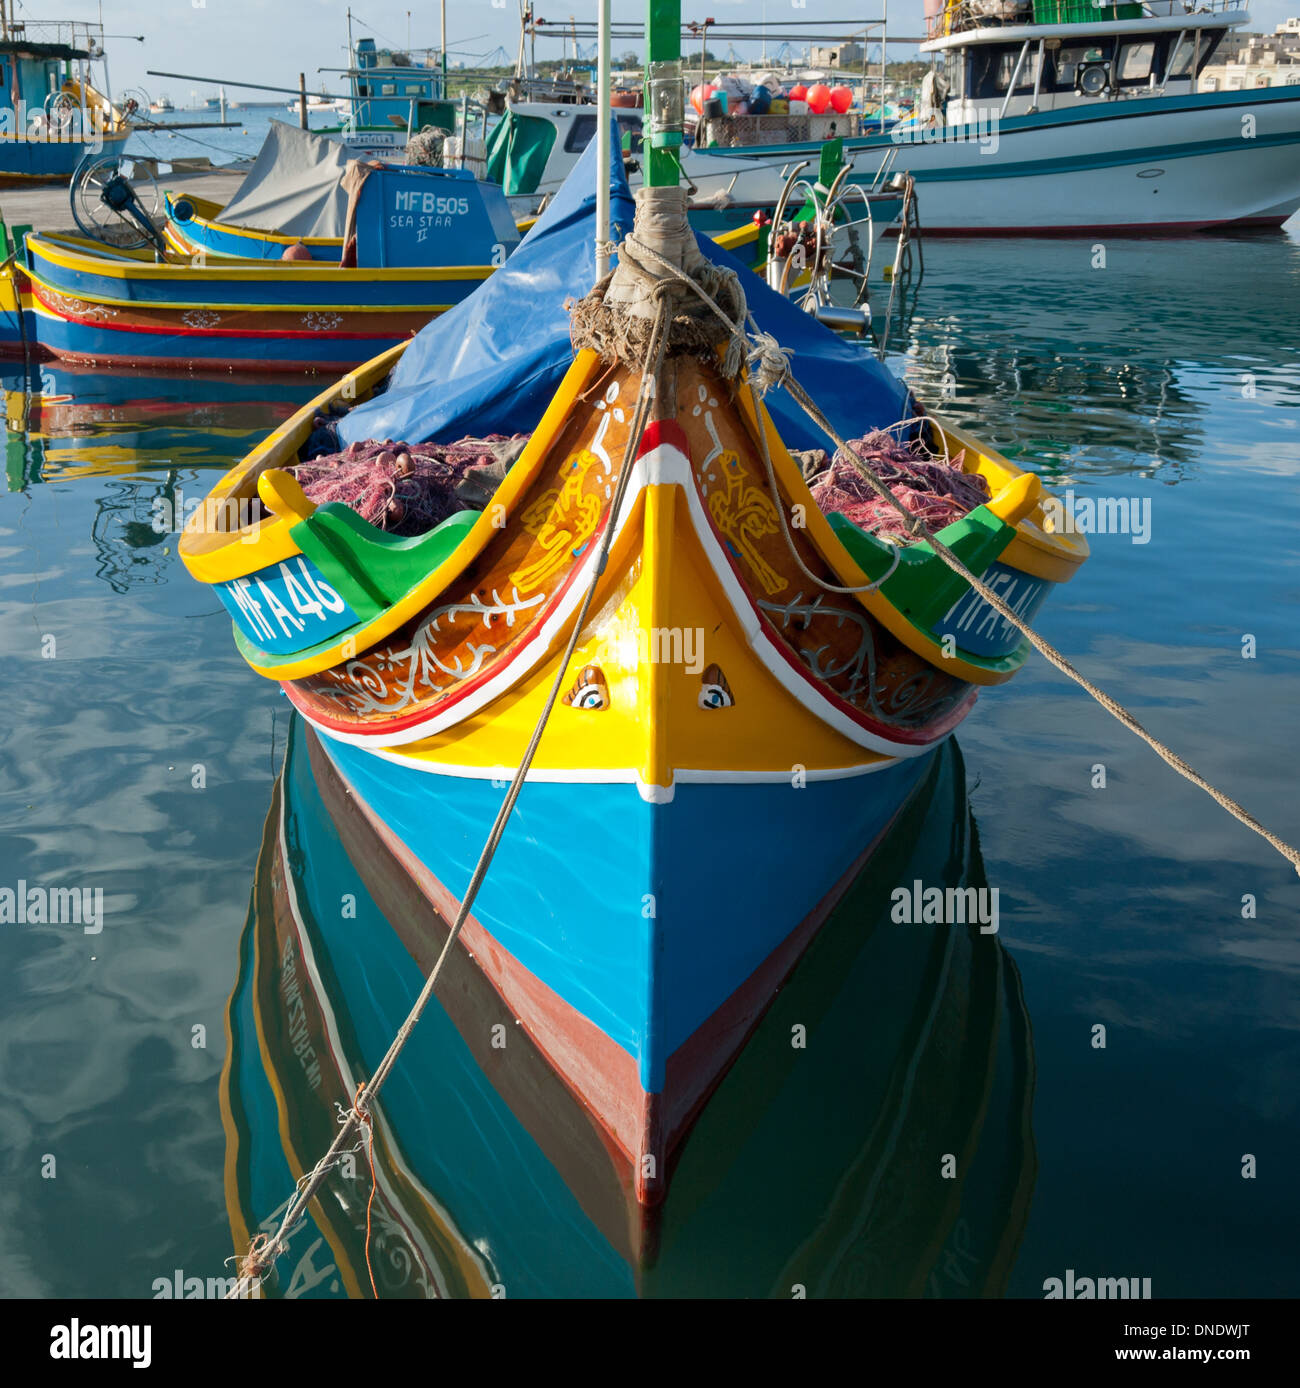 A colourful luzzu moored in Marsaxlokk Harbour in Marsaxlokk, Malta. A luzzu is a traditional Maltese fishing boat. - Stock Image